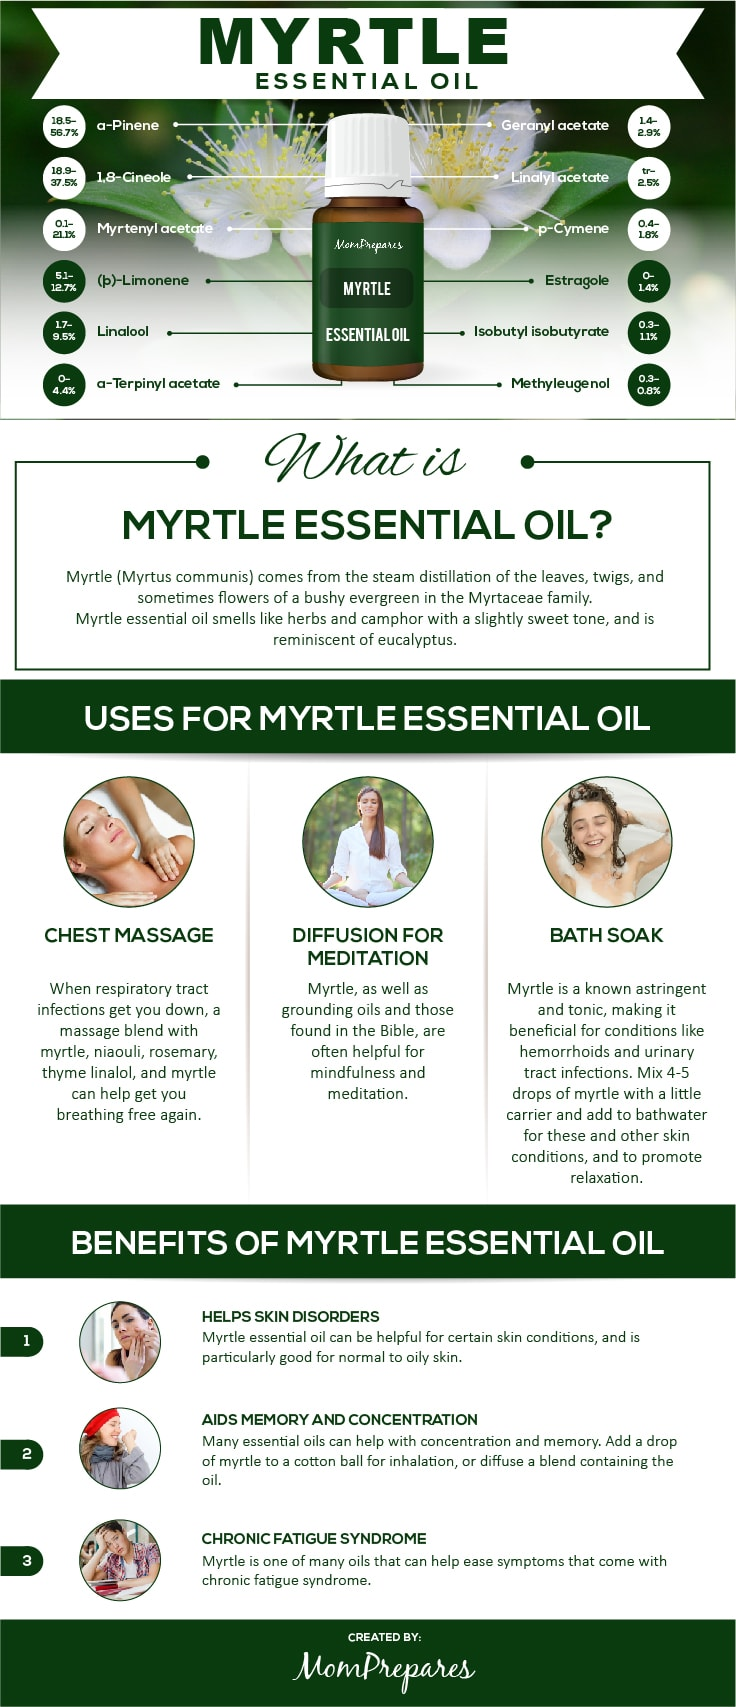 Myrtle infographic